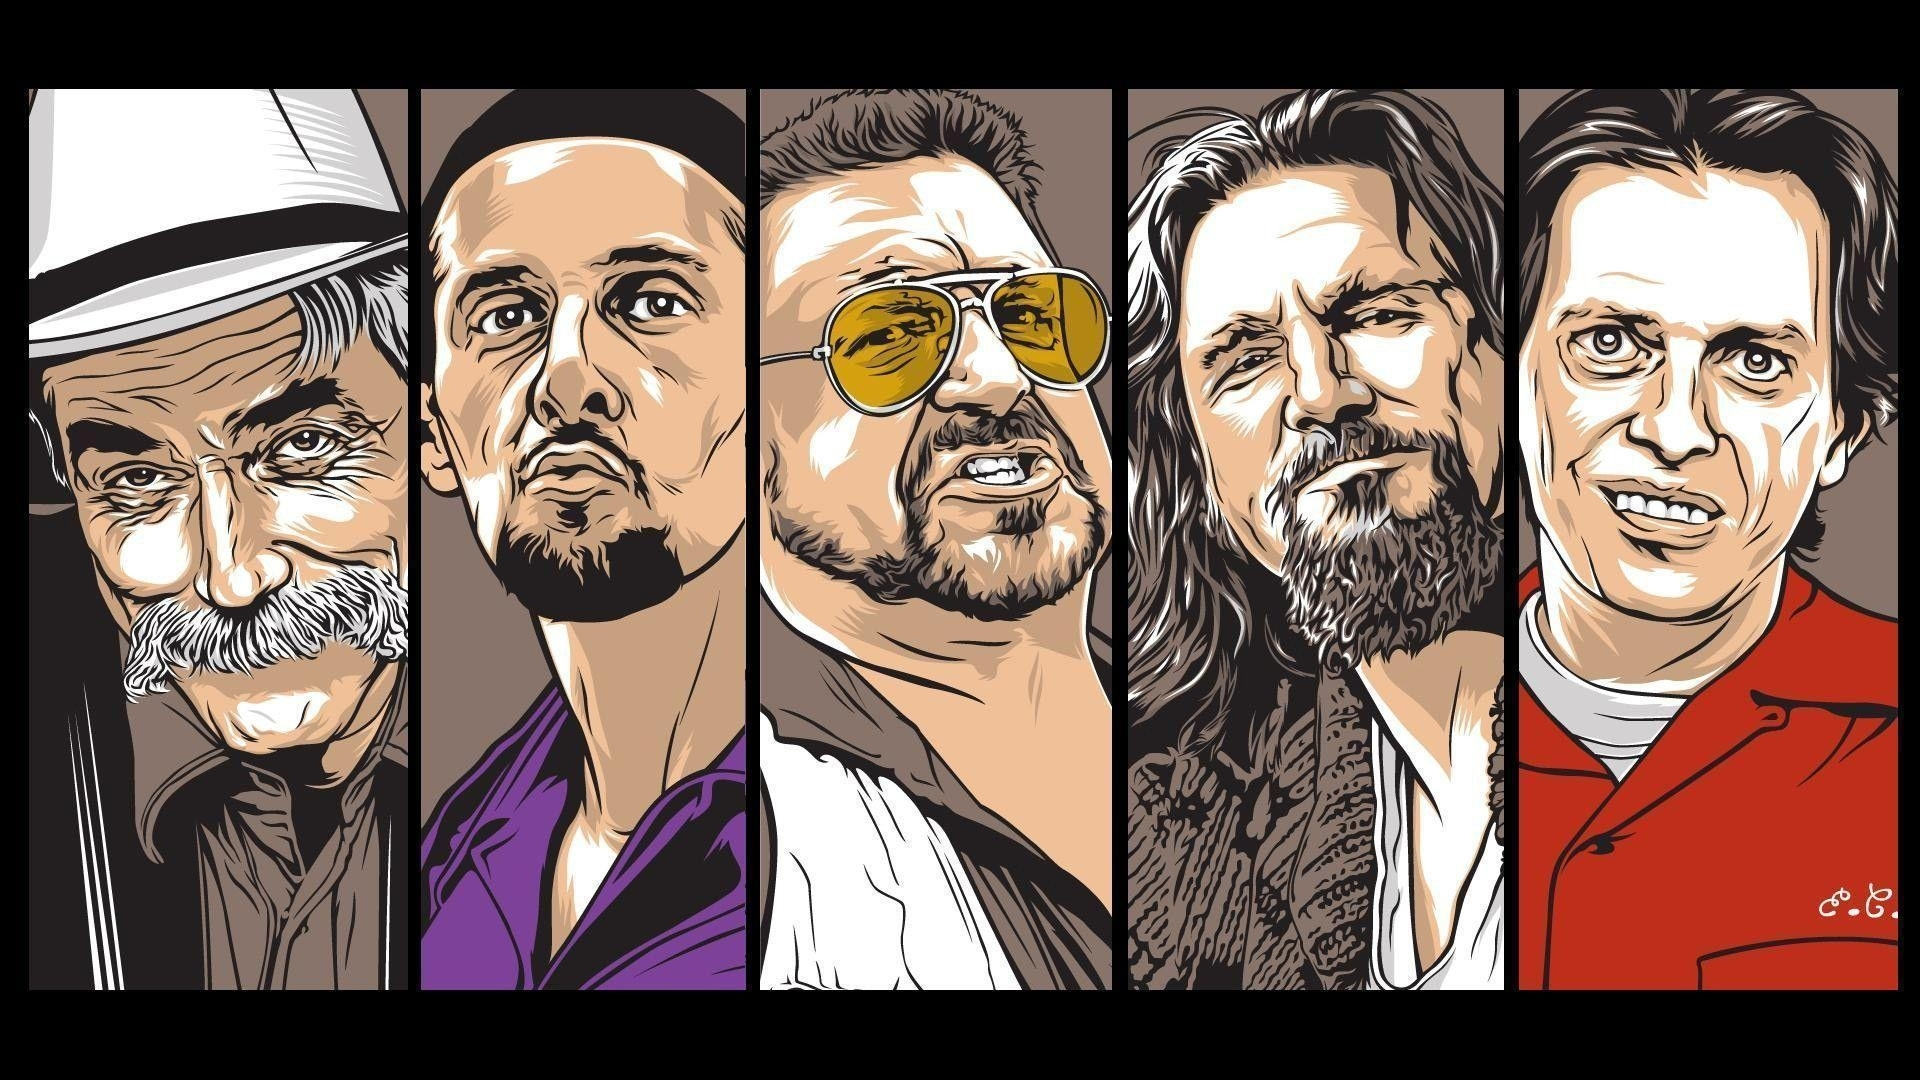 10 Top The Big Lebowski Wallpaper FULL HD 1920×1080 For PC Background